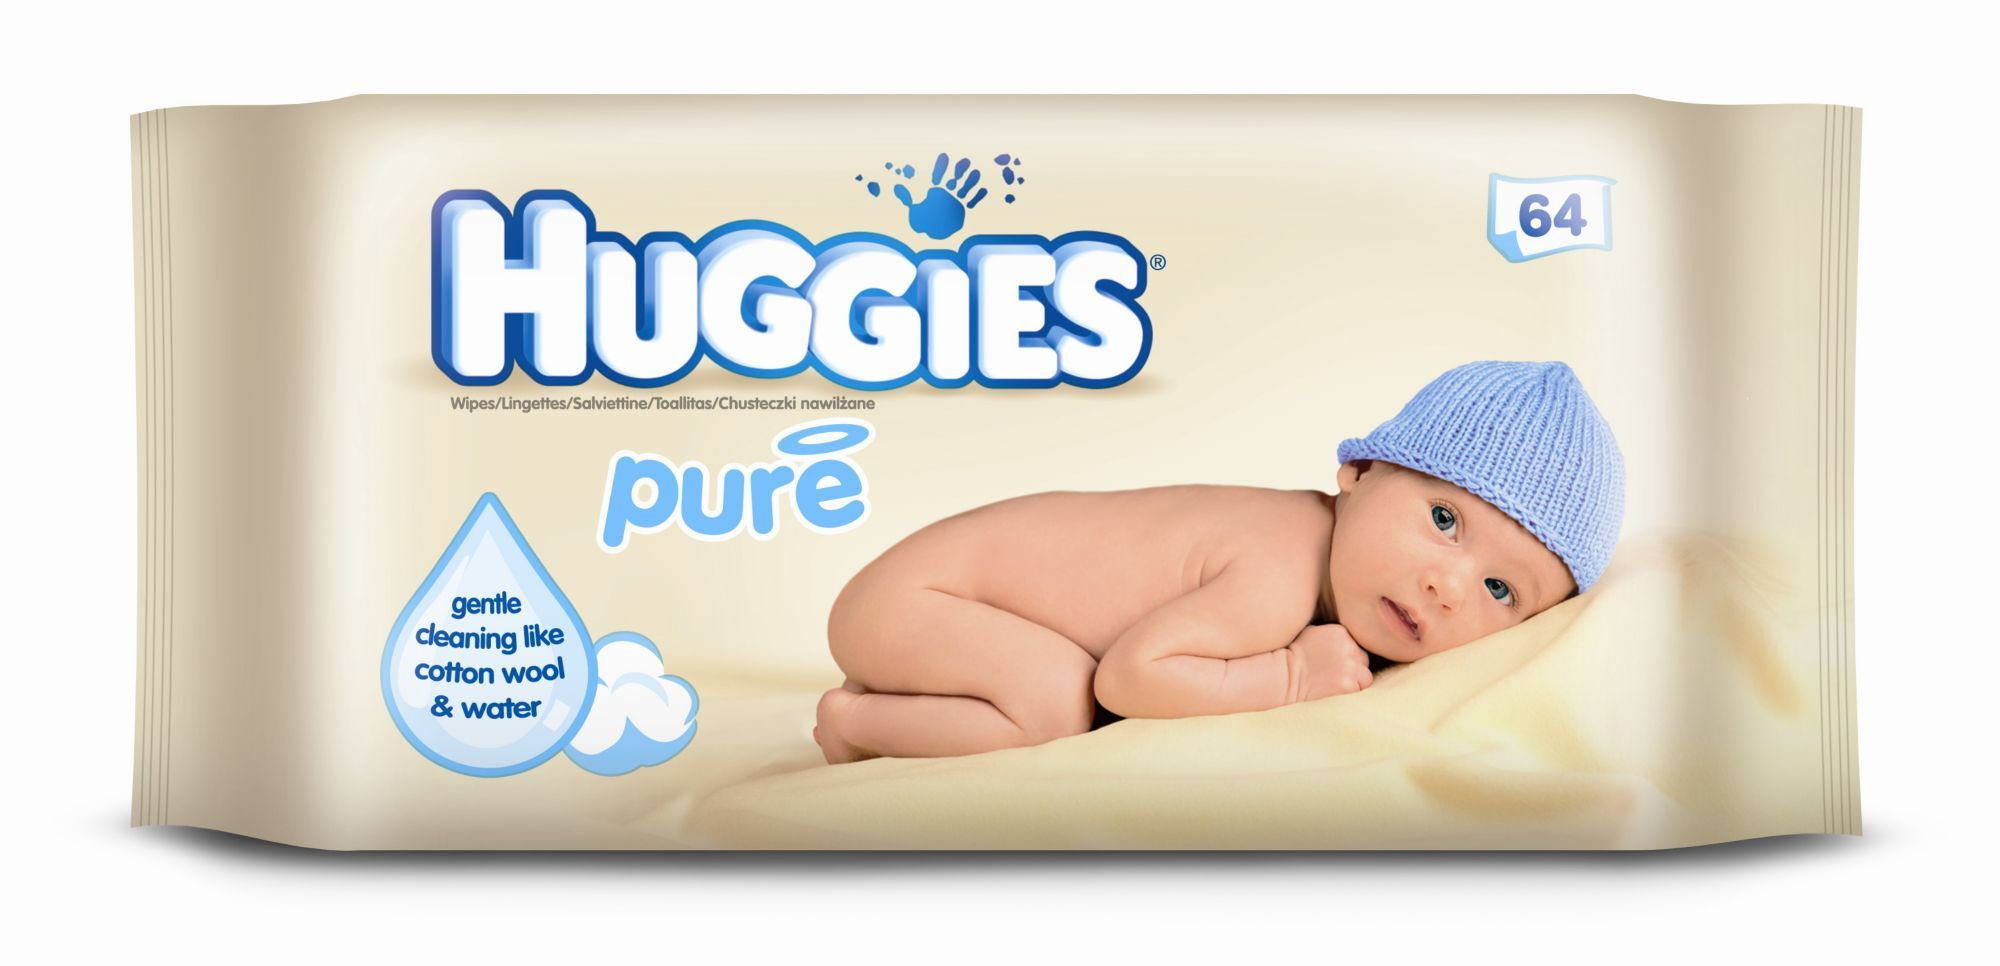 Huggies Pure Single Wipes 56 Pack Babies Baby Baby